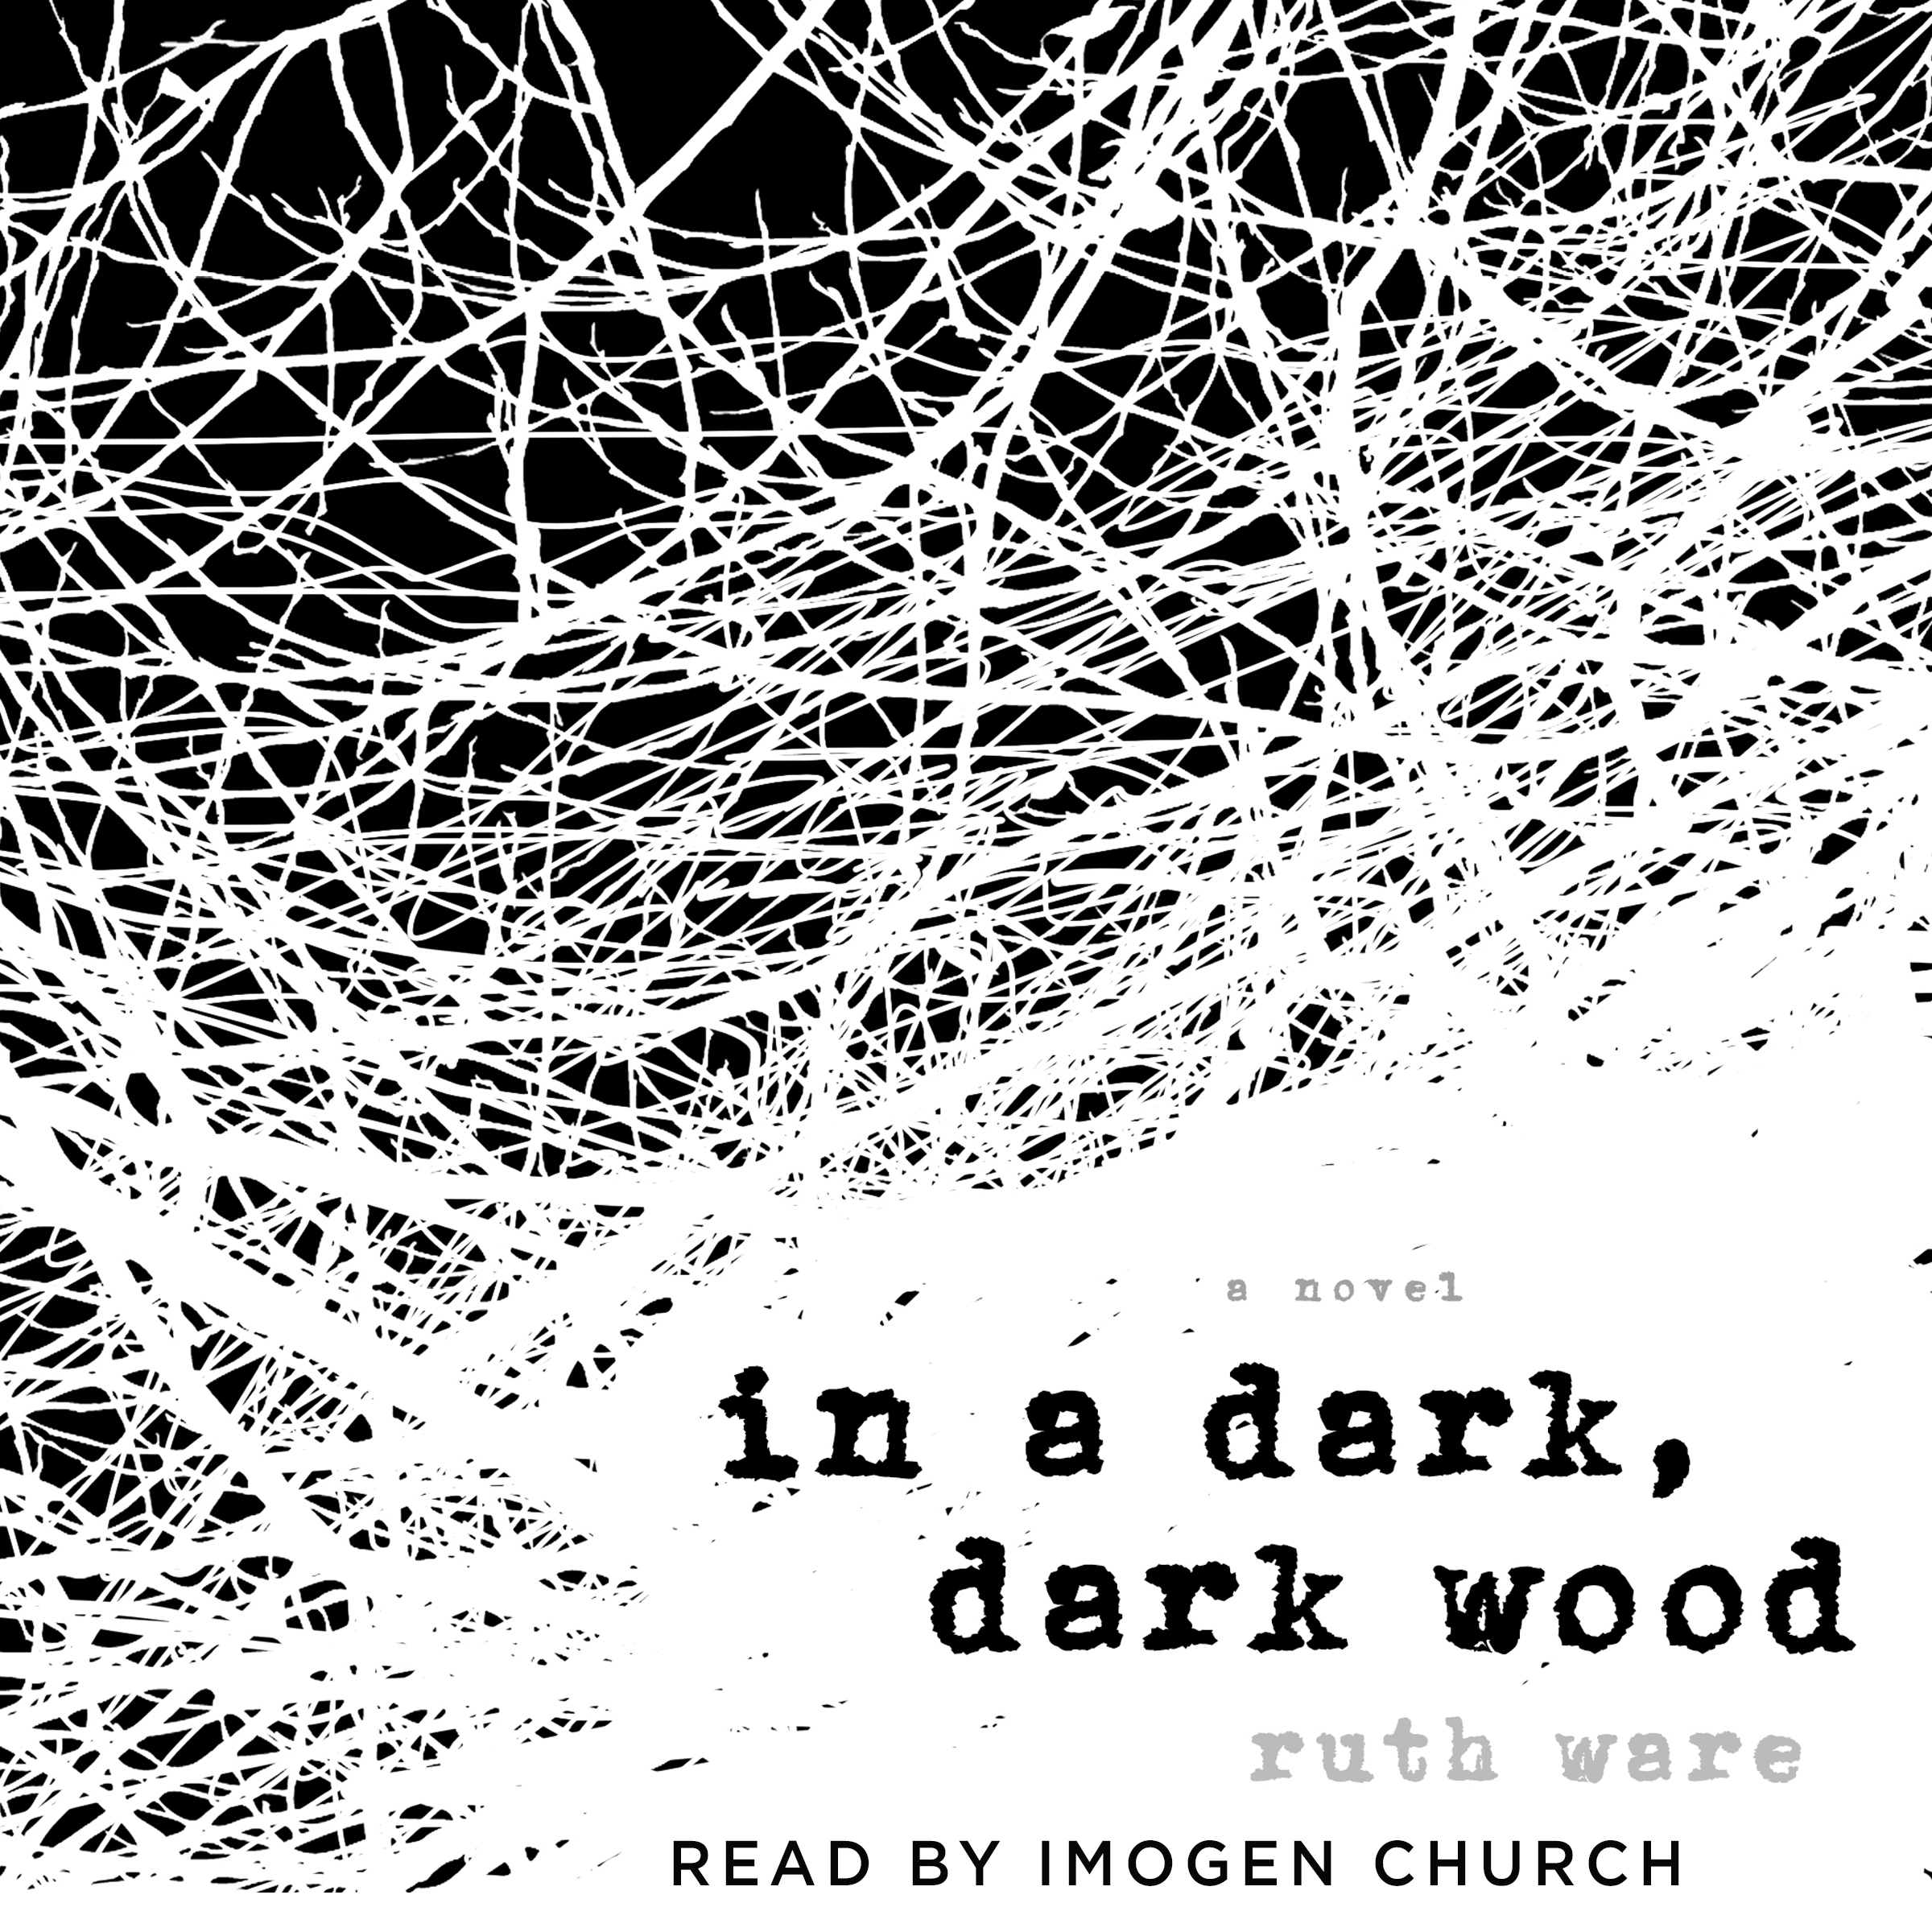 free download novel dating with the dark